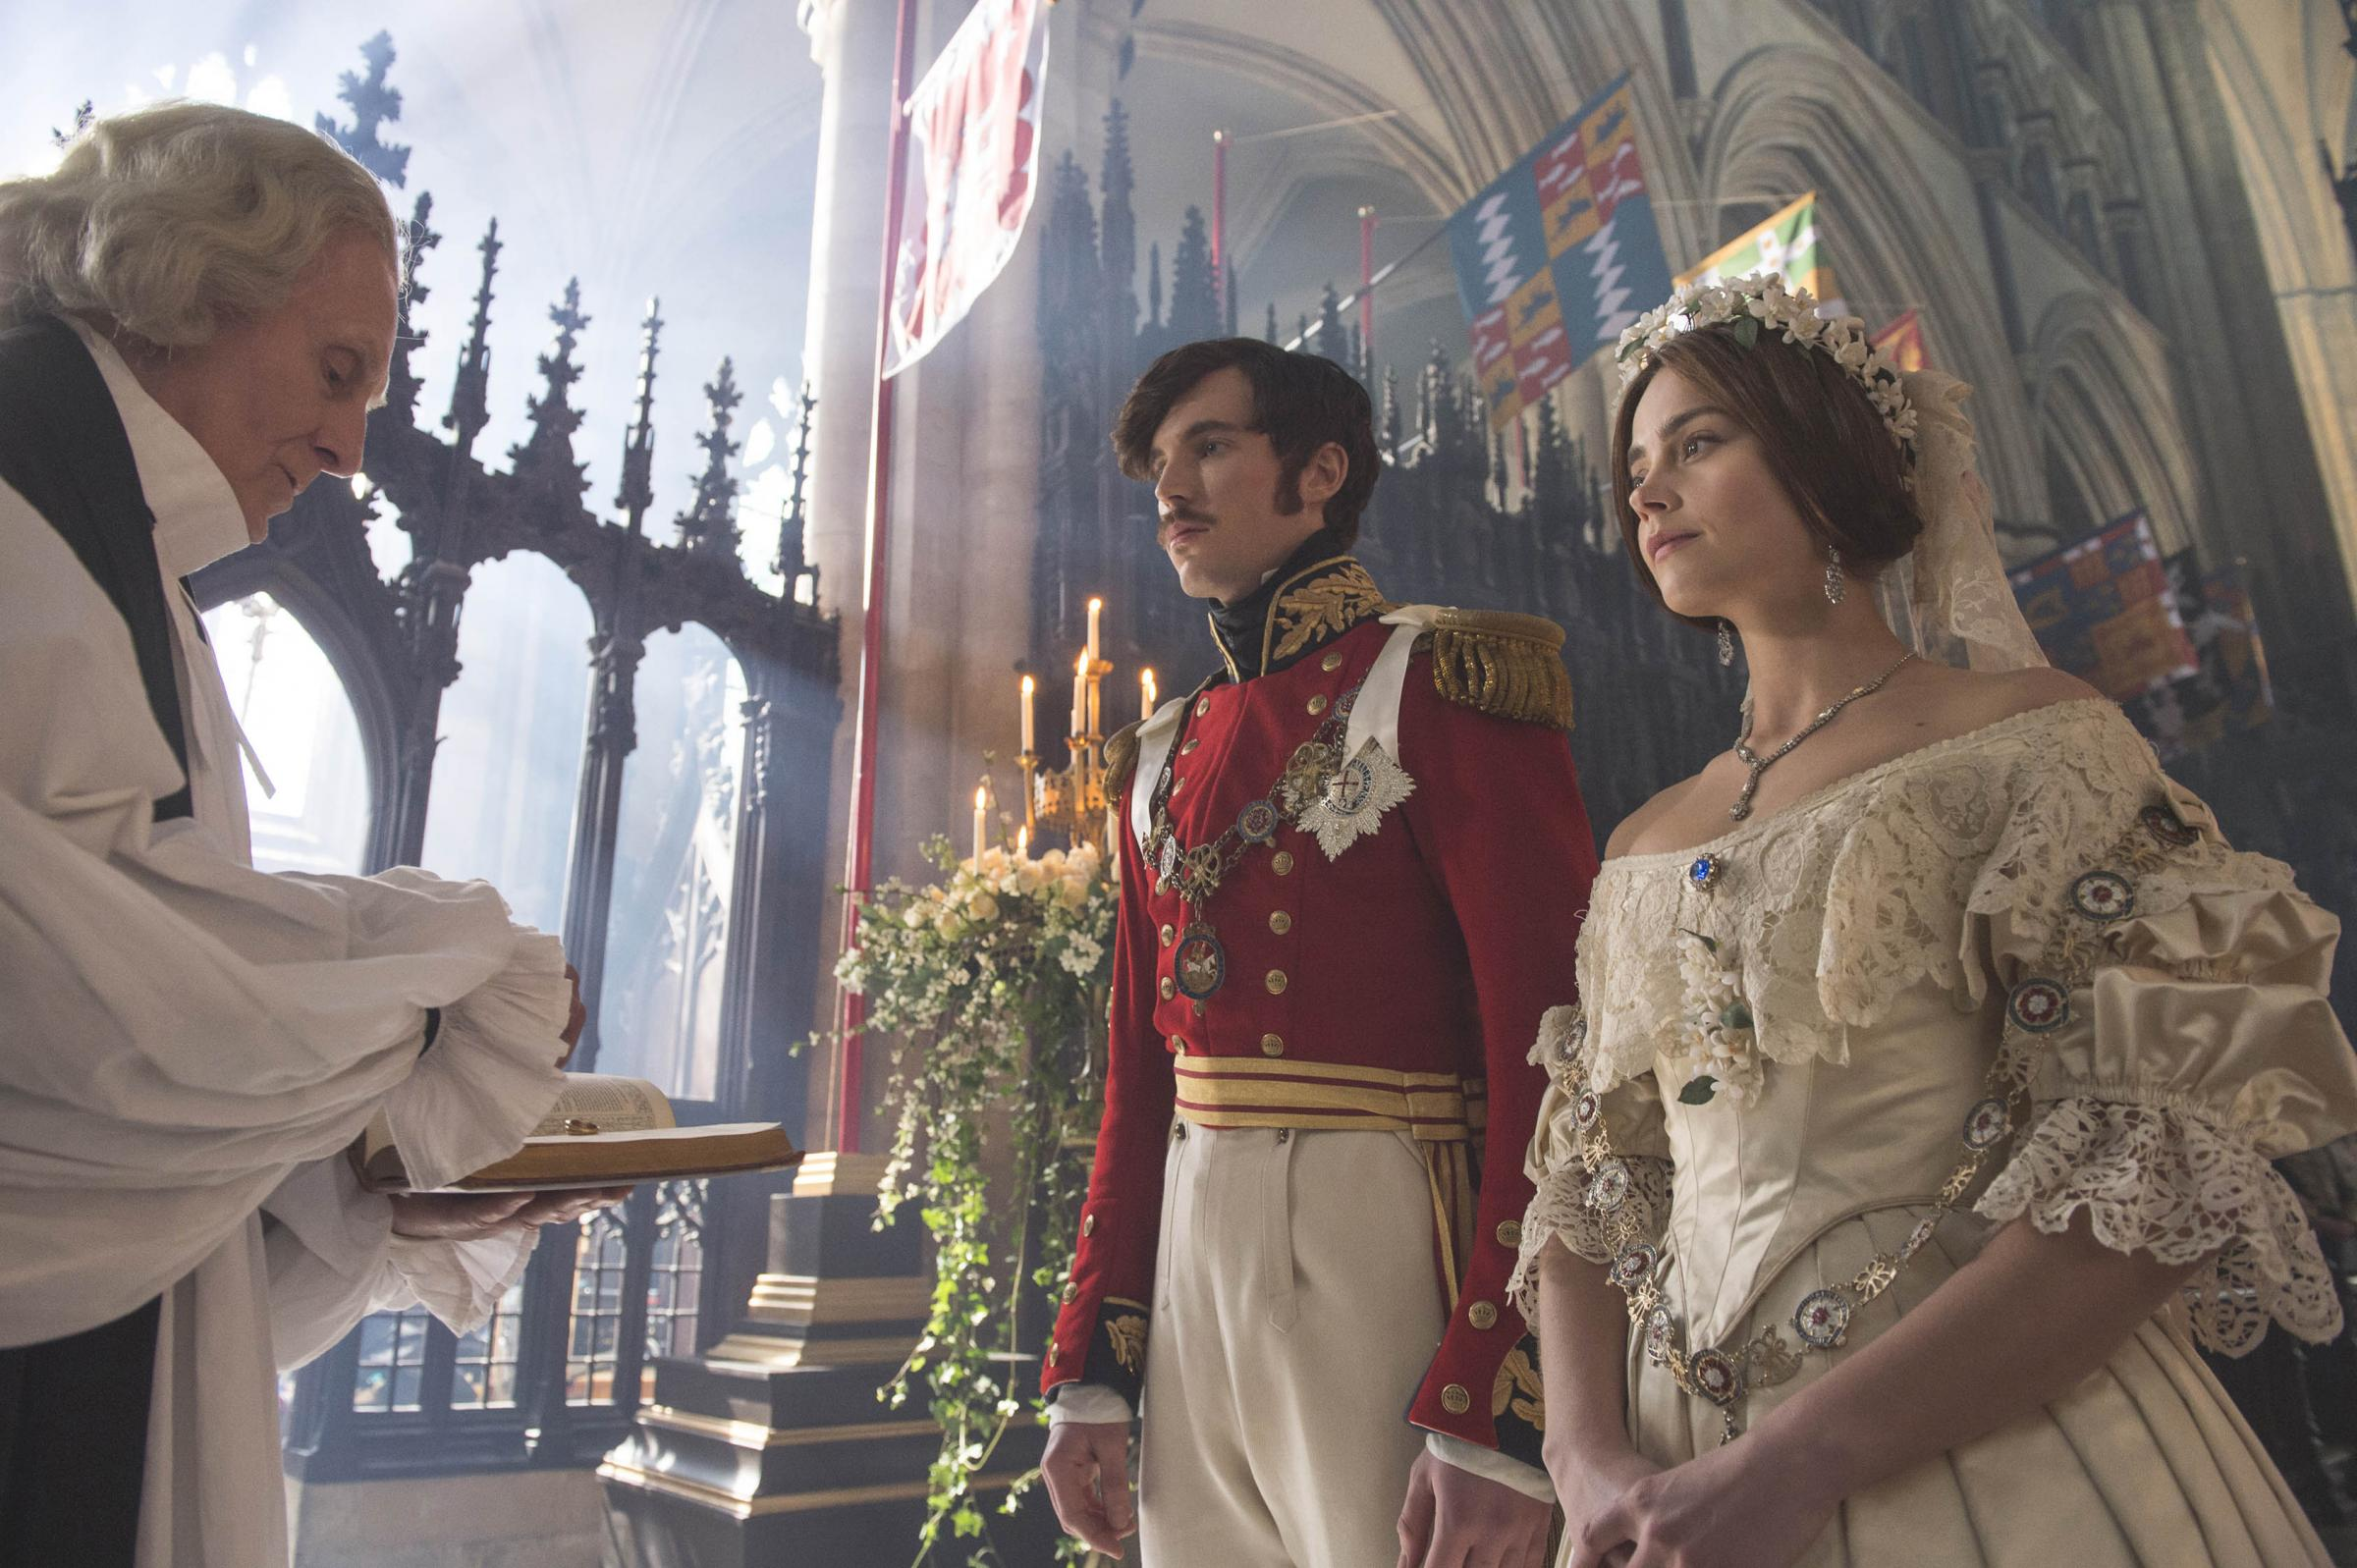 AWARD: Graduates of Arts University Bournemouth's course in costume and performance design worked on ITV's series Victoria